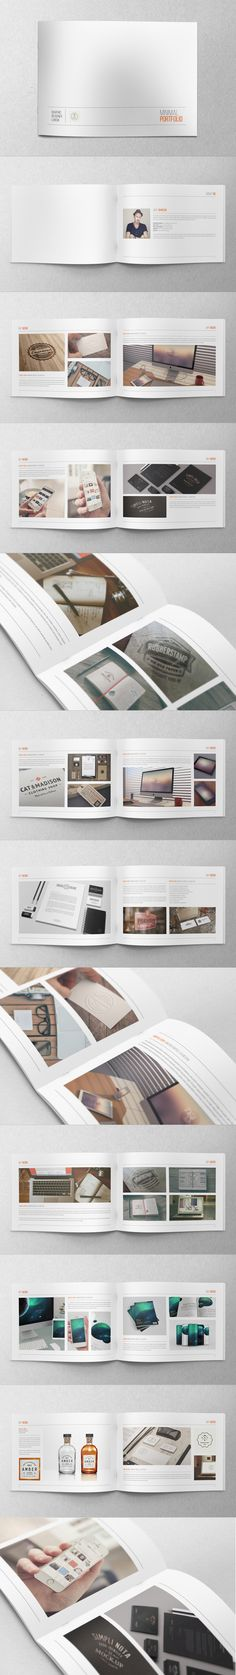 Minimal Hipster Design Portfolio by Abra Design, via Behance